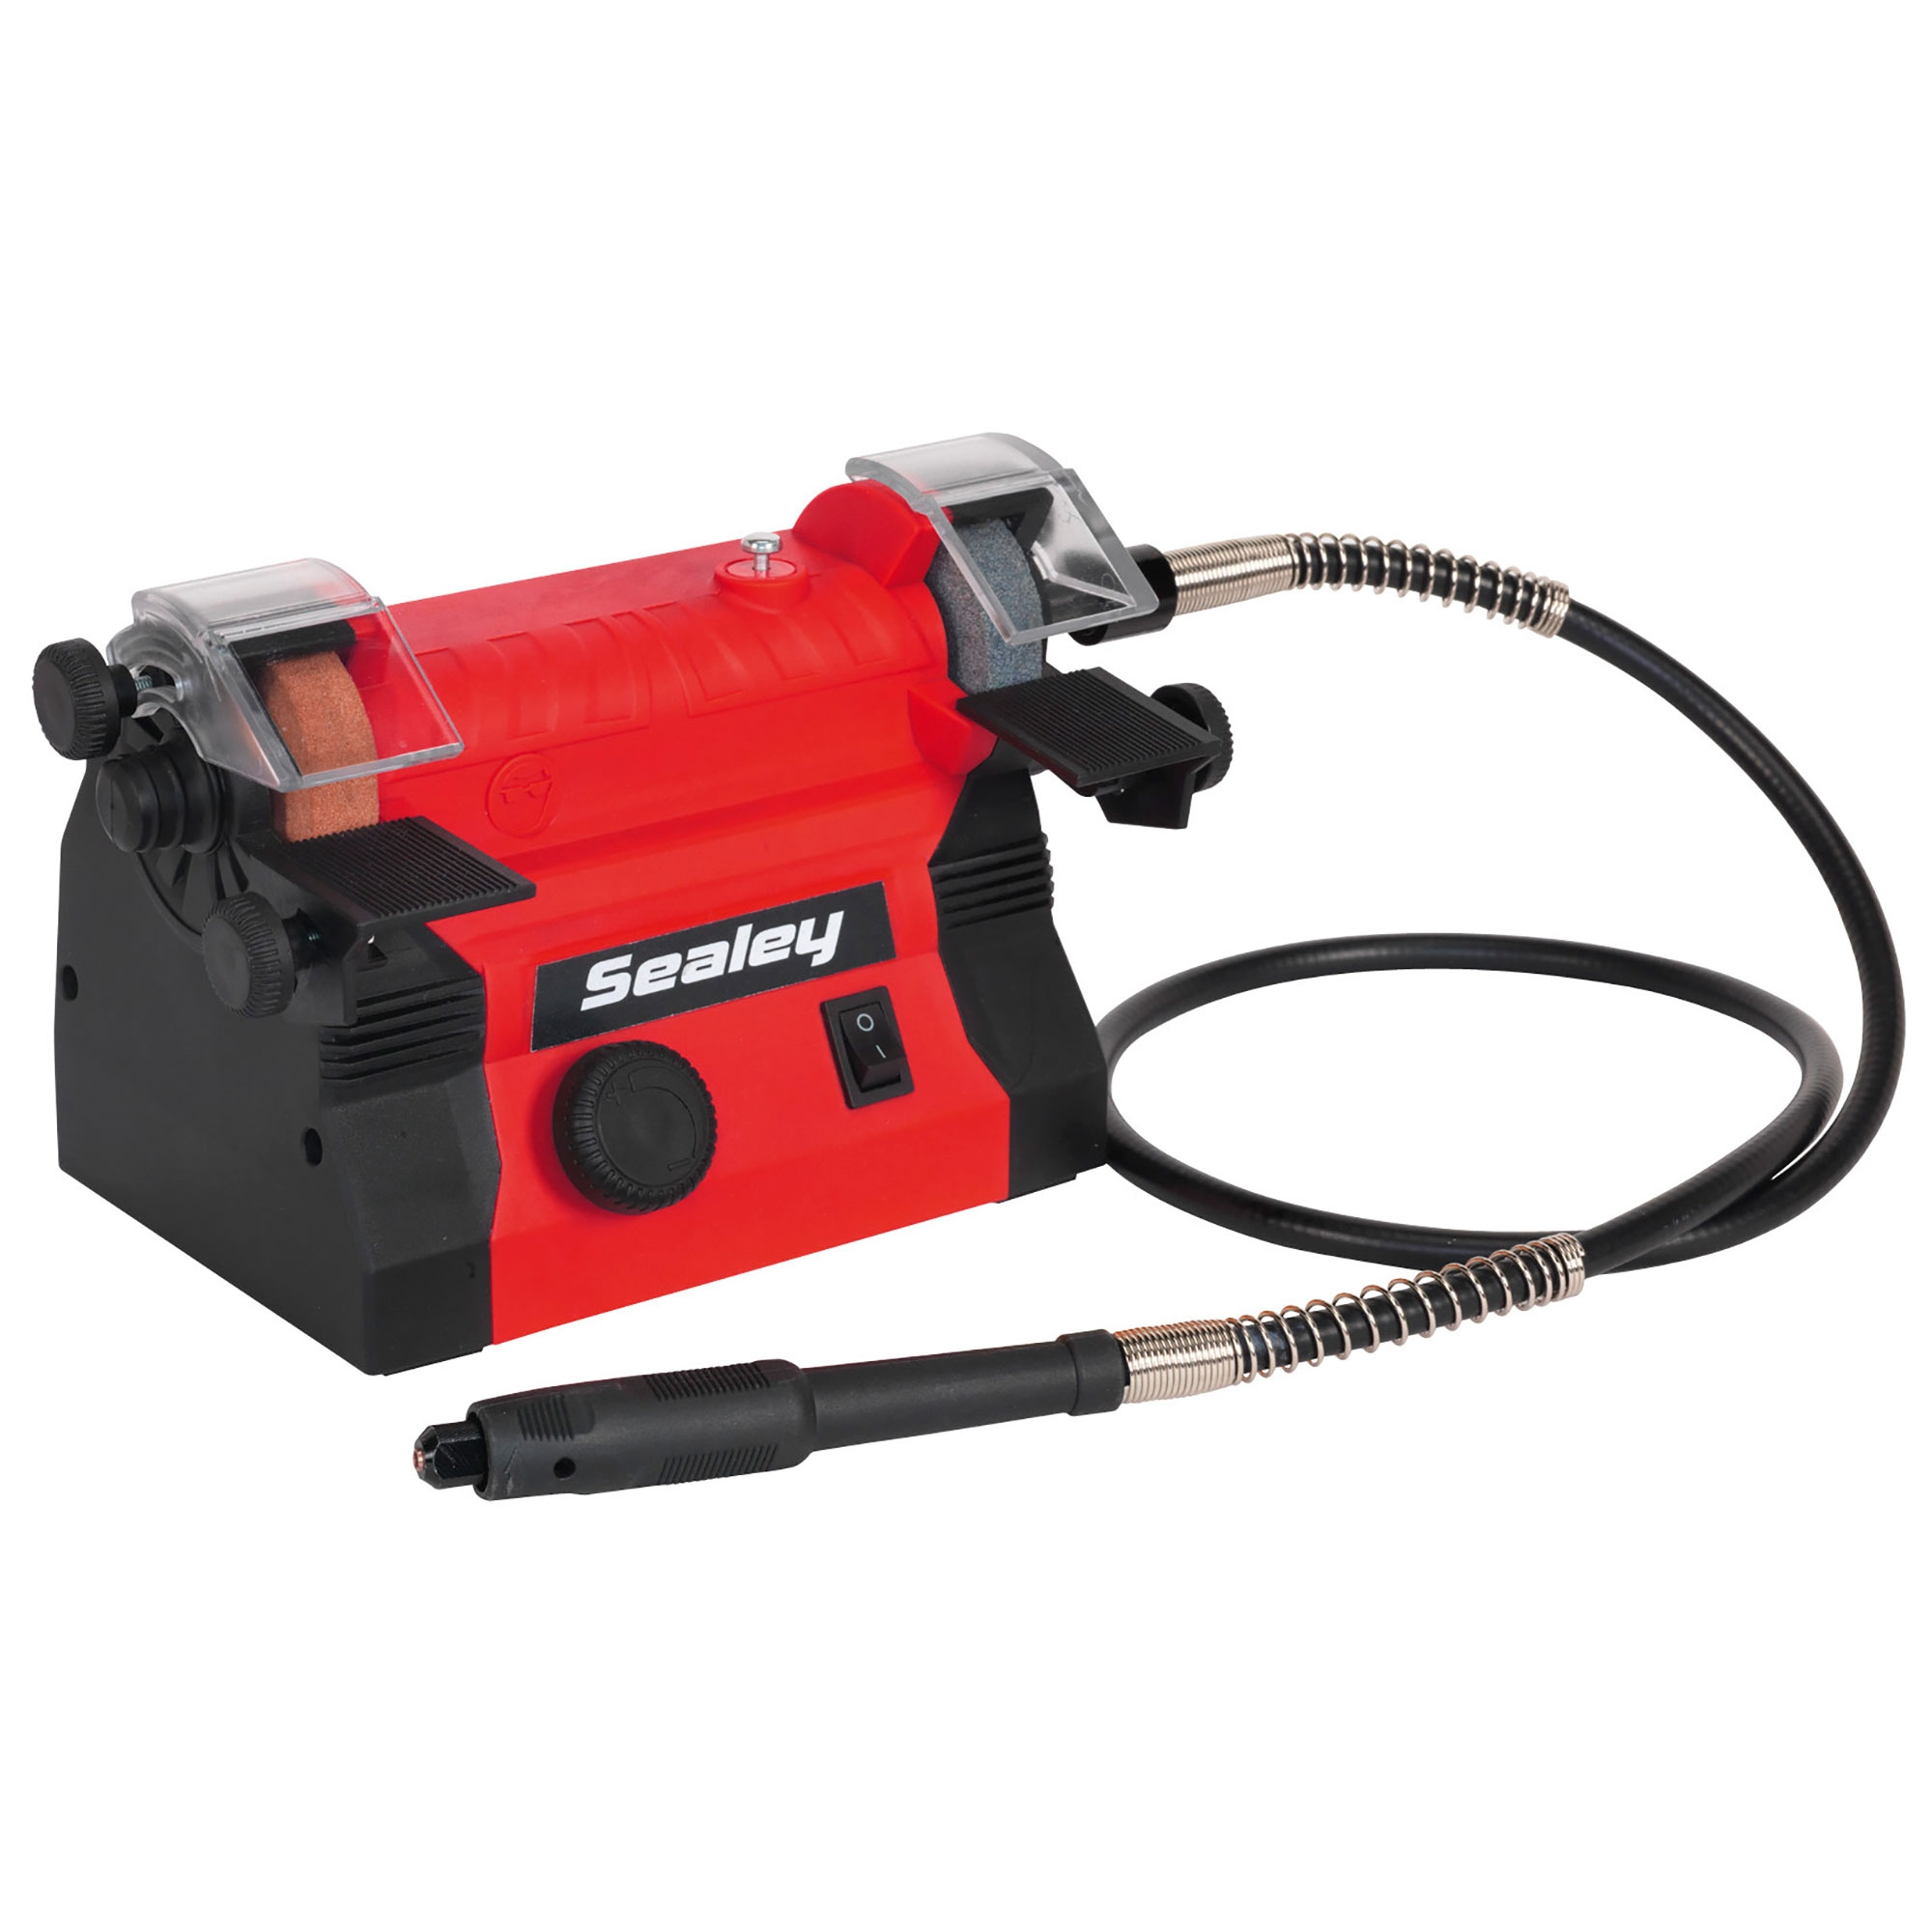 Sealey Mini Bench Grinder Grinding 50mm Flexible Drive